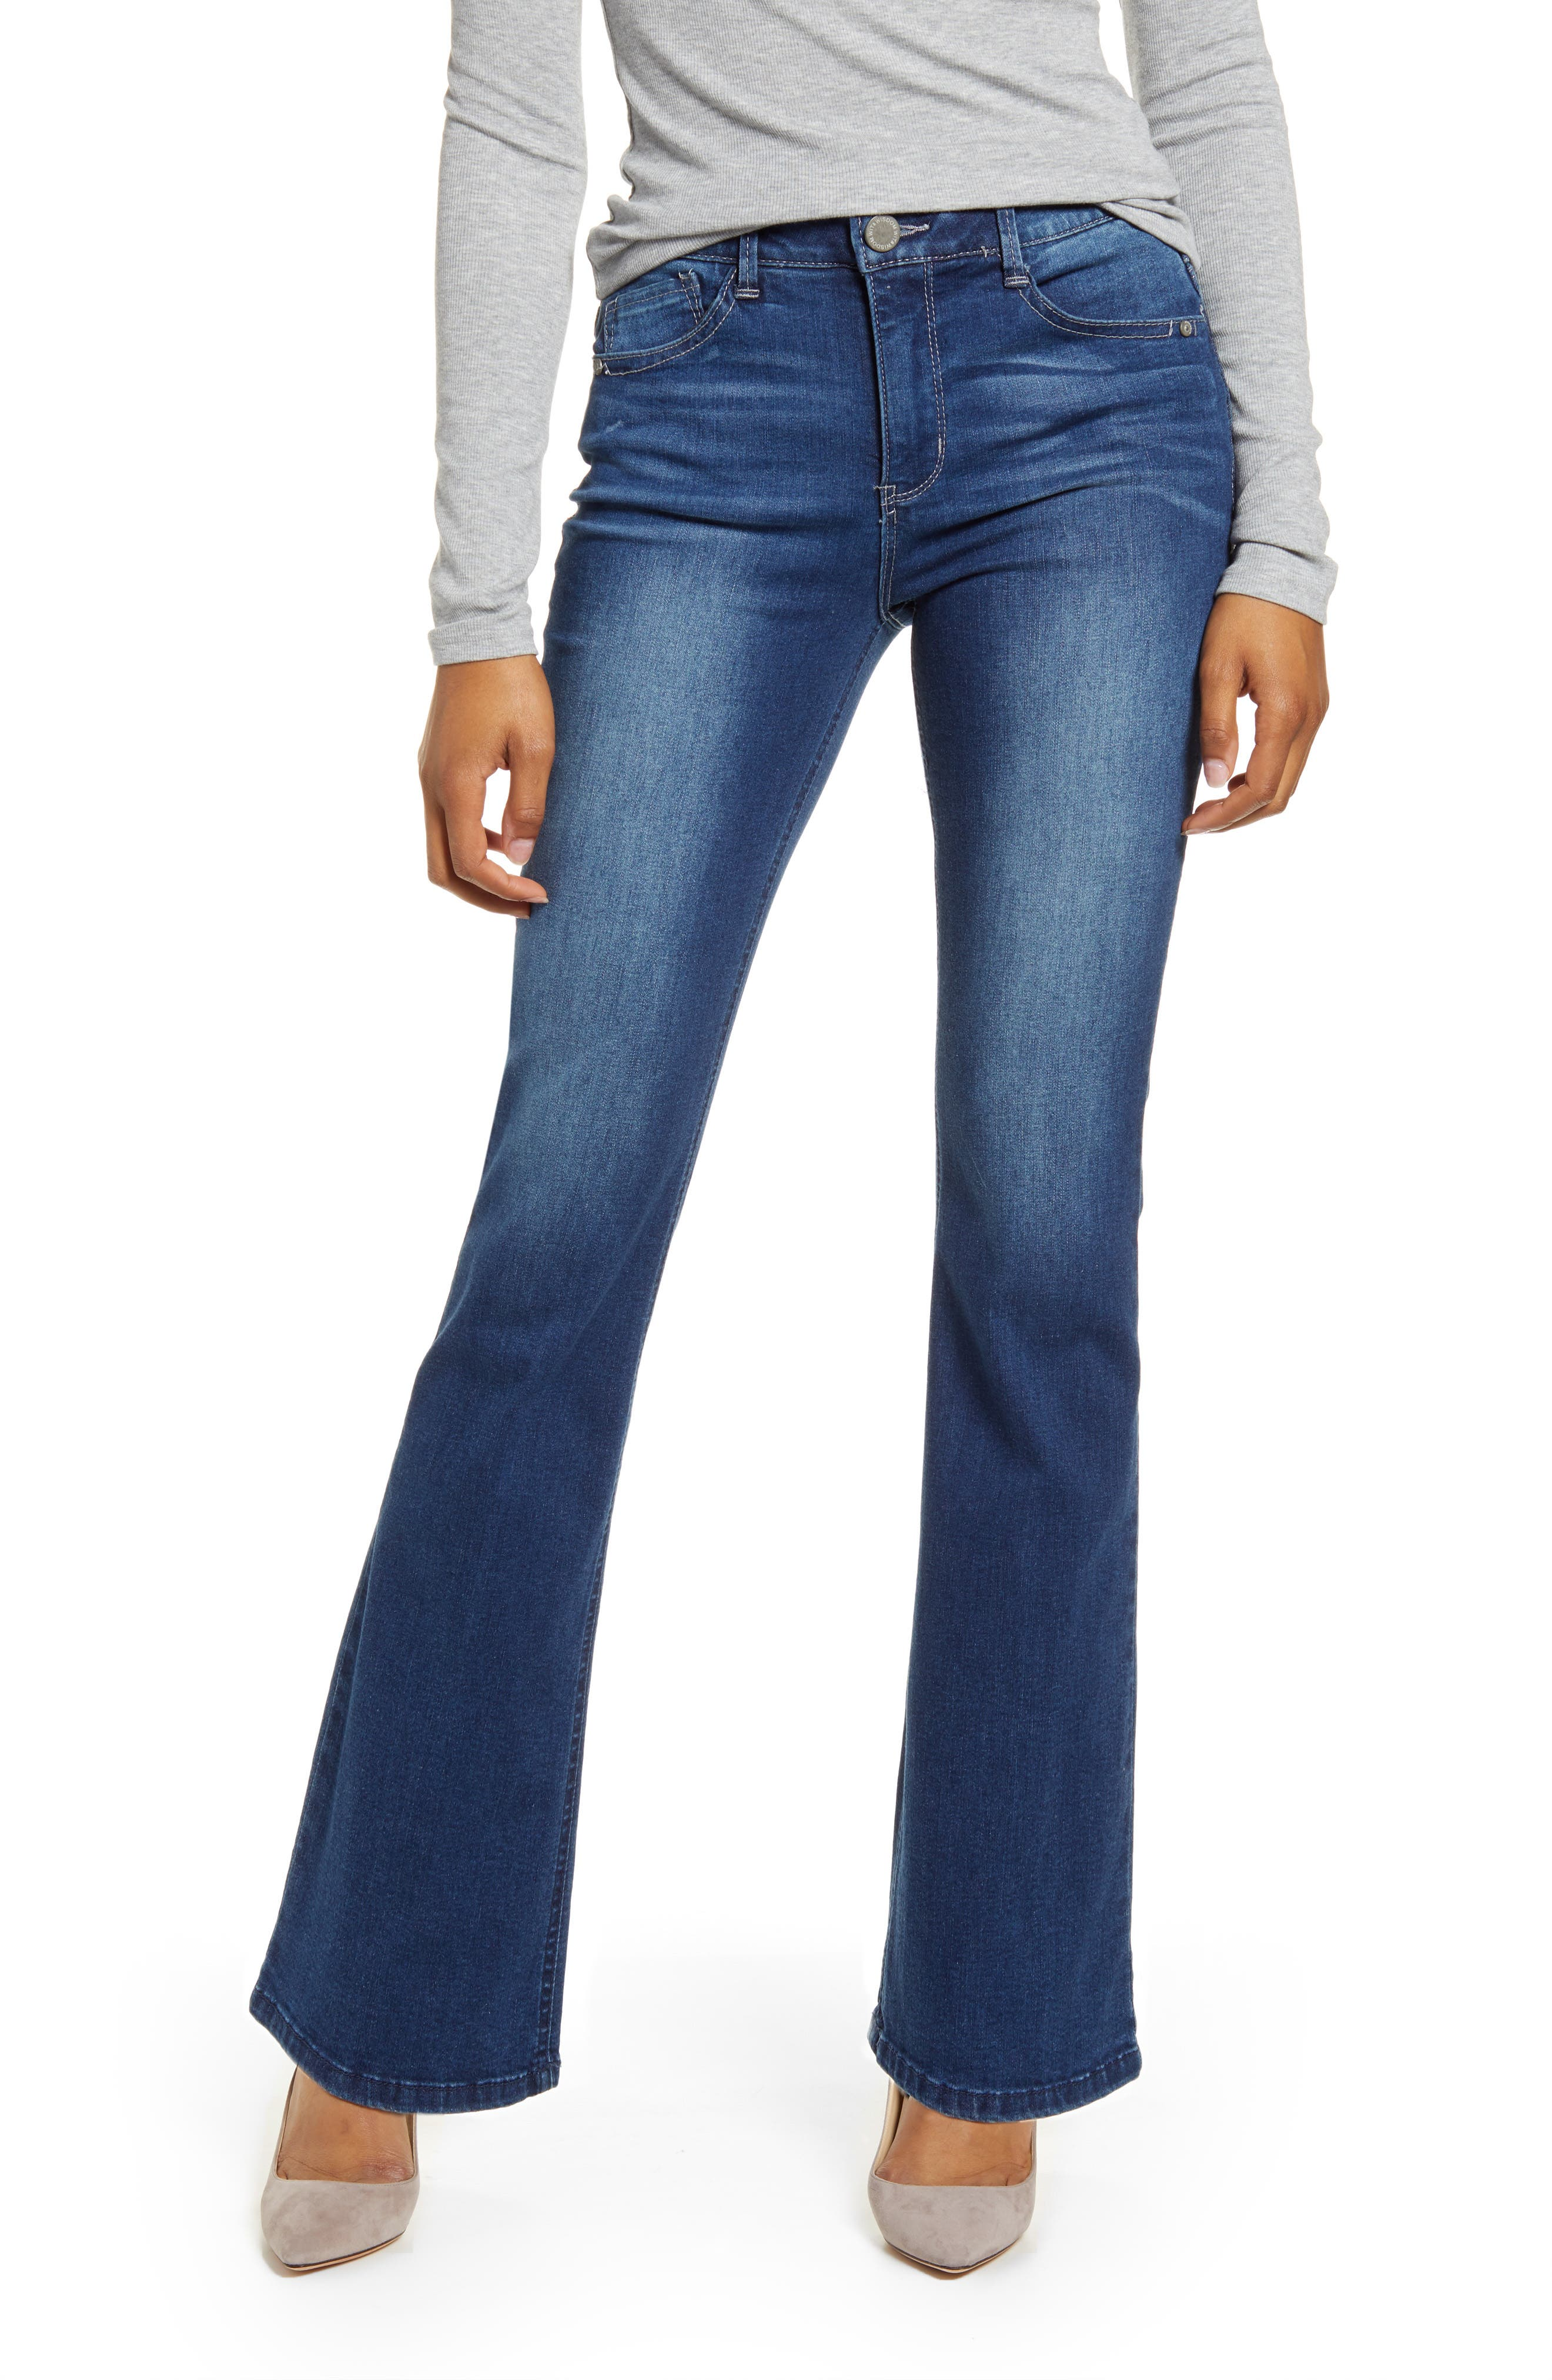 Wit & Wisdom\\\'s revolutionary fit system takes care of shaping, molding and holding, so all you need to worry about is looking amazing in these bootcut blue jeans. Style Name: Wit & Wisdom Ab-Solution Itty Bitty High Waist Bootcut Jeans (Regular & Petite) (Nordstrom Exclusive). Style Number: 5876558. Available in stores.